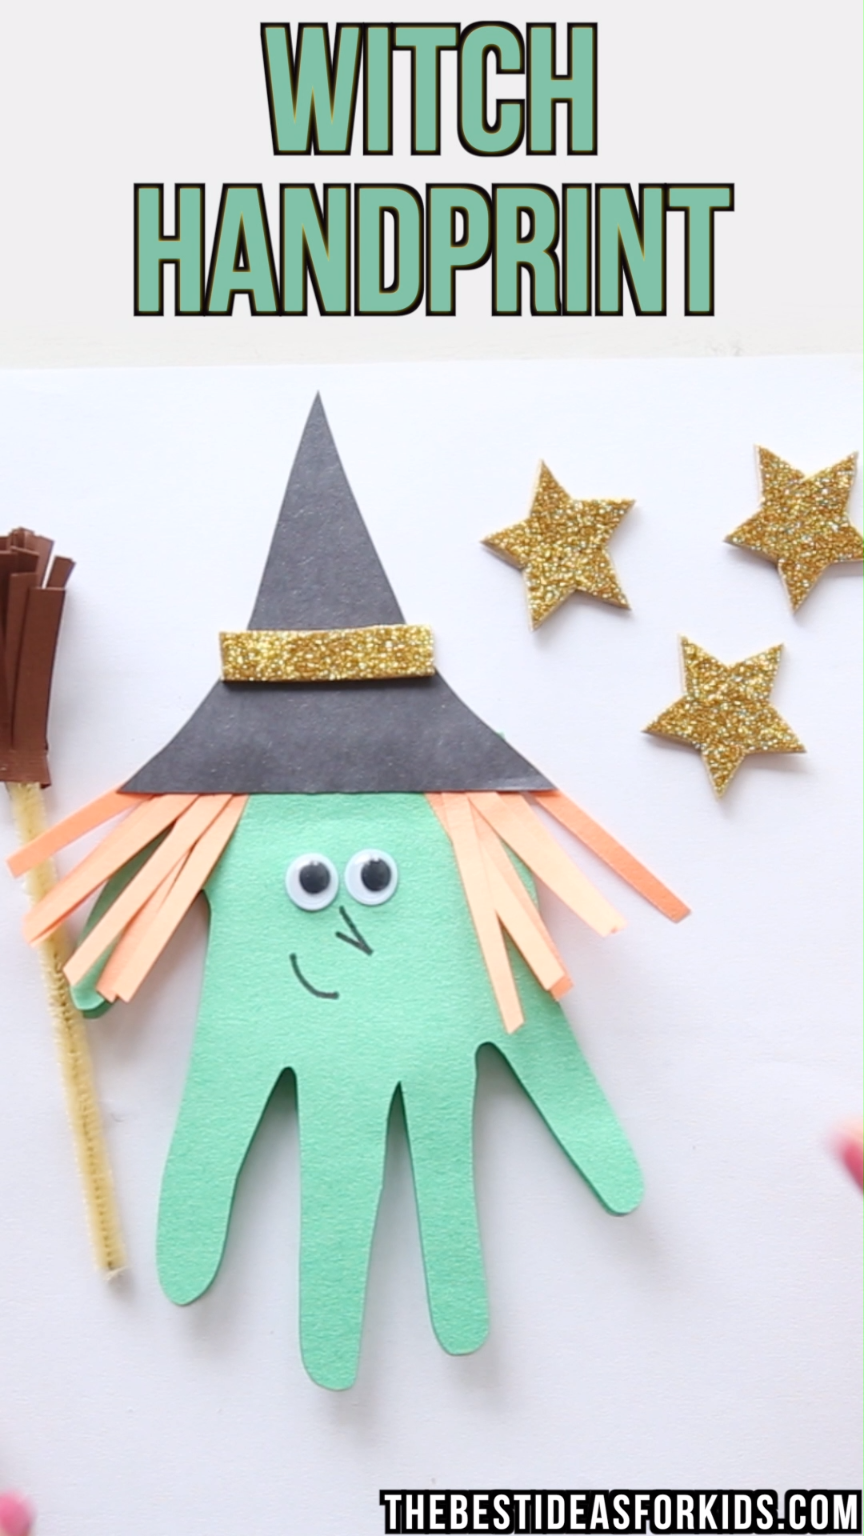 Handprint Witch #craftsforkids